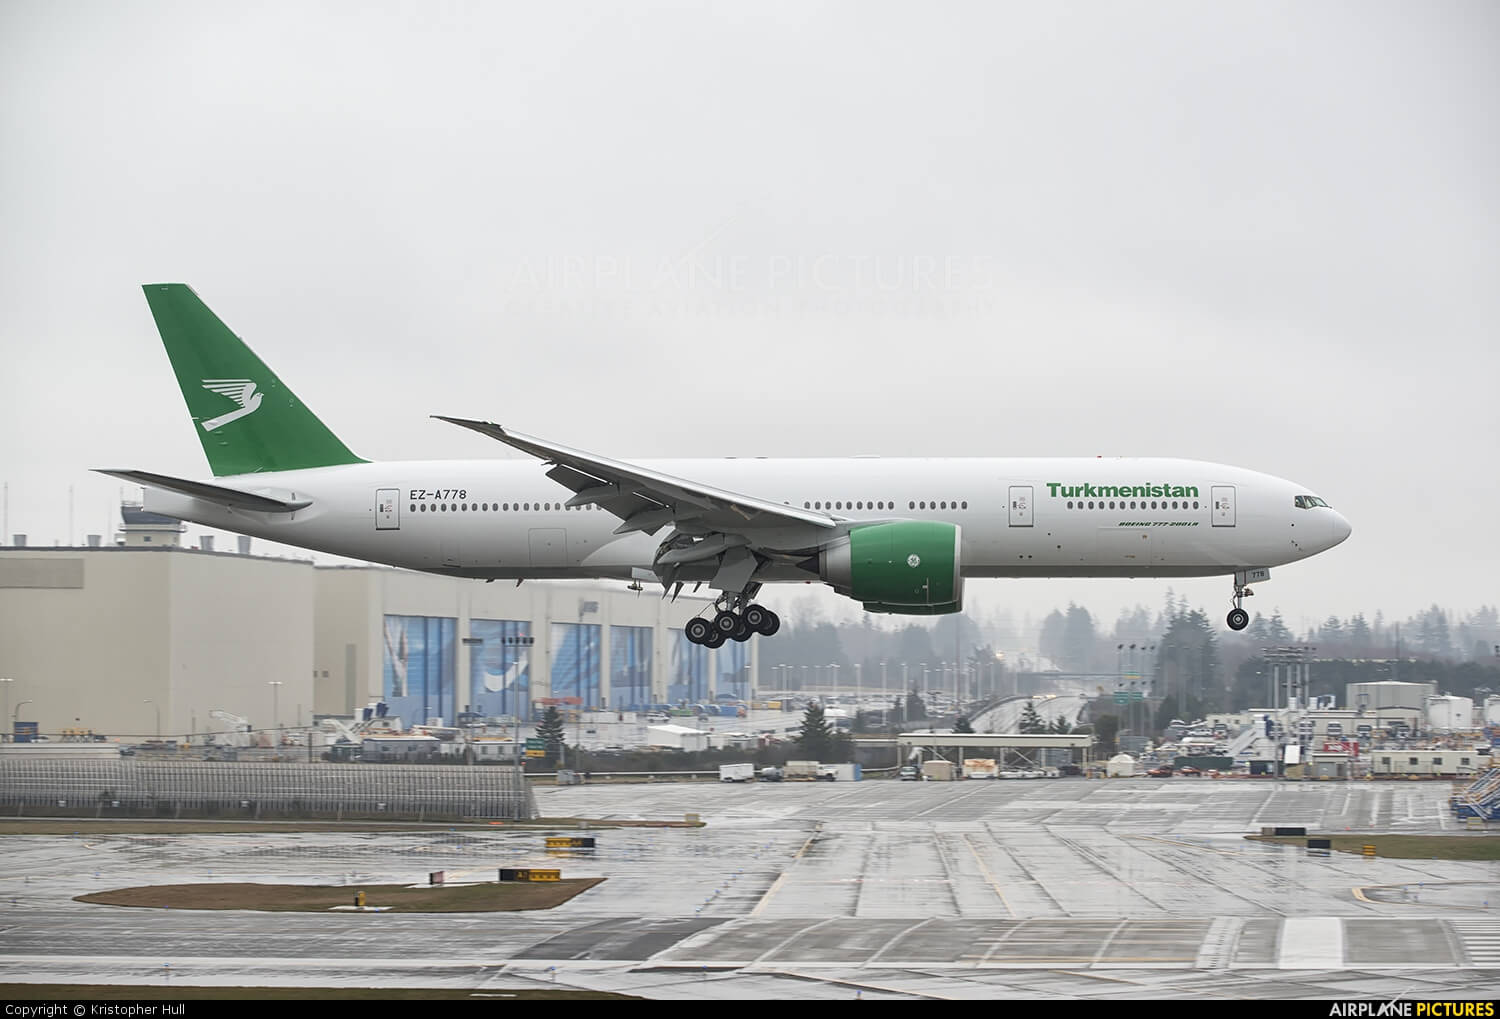 Turkmenistan Airlines intends to order one Boeing 777-200LR